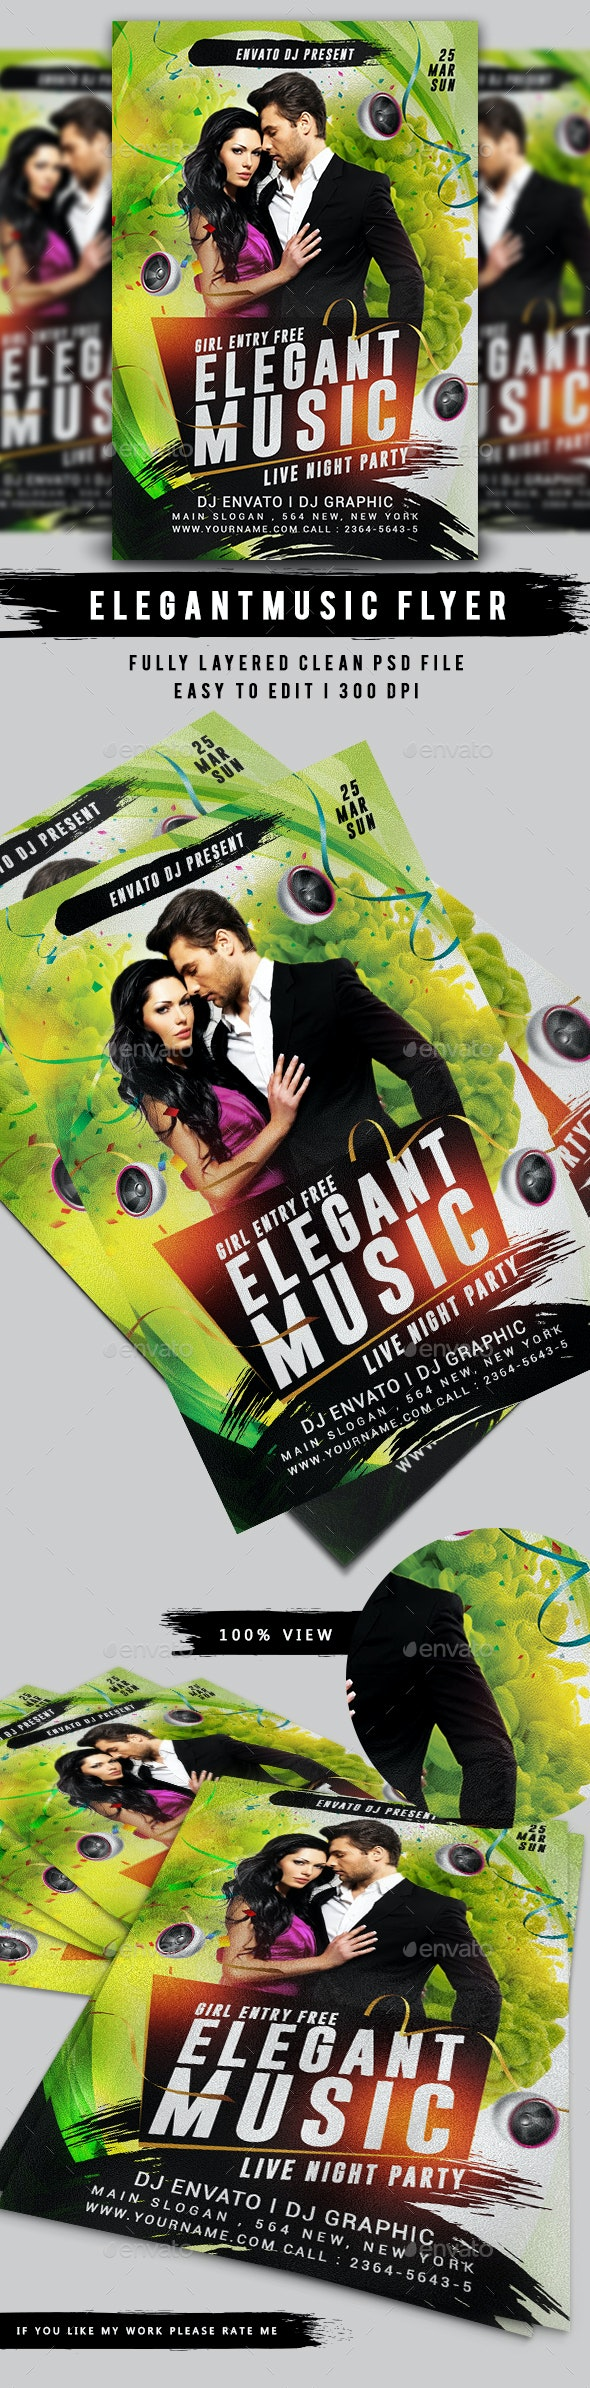 Elegant Music Party Flyer - Clubs & Parties Events